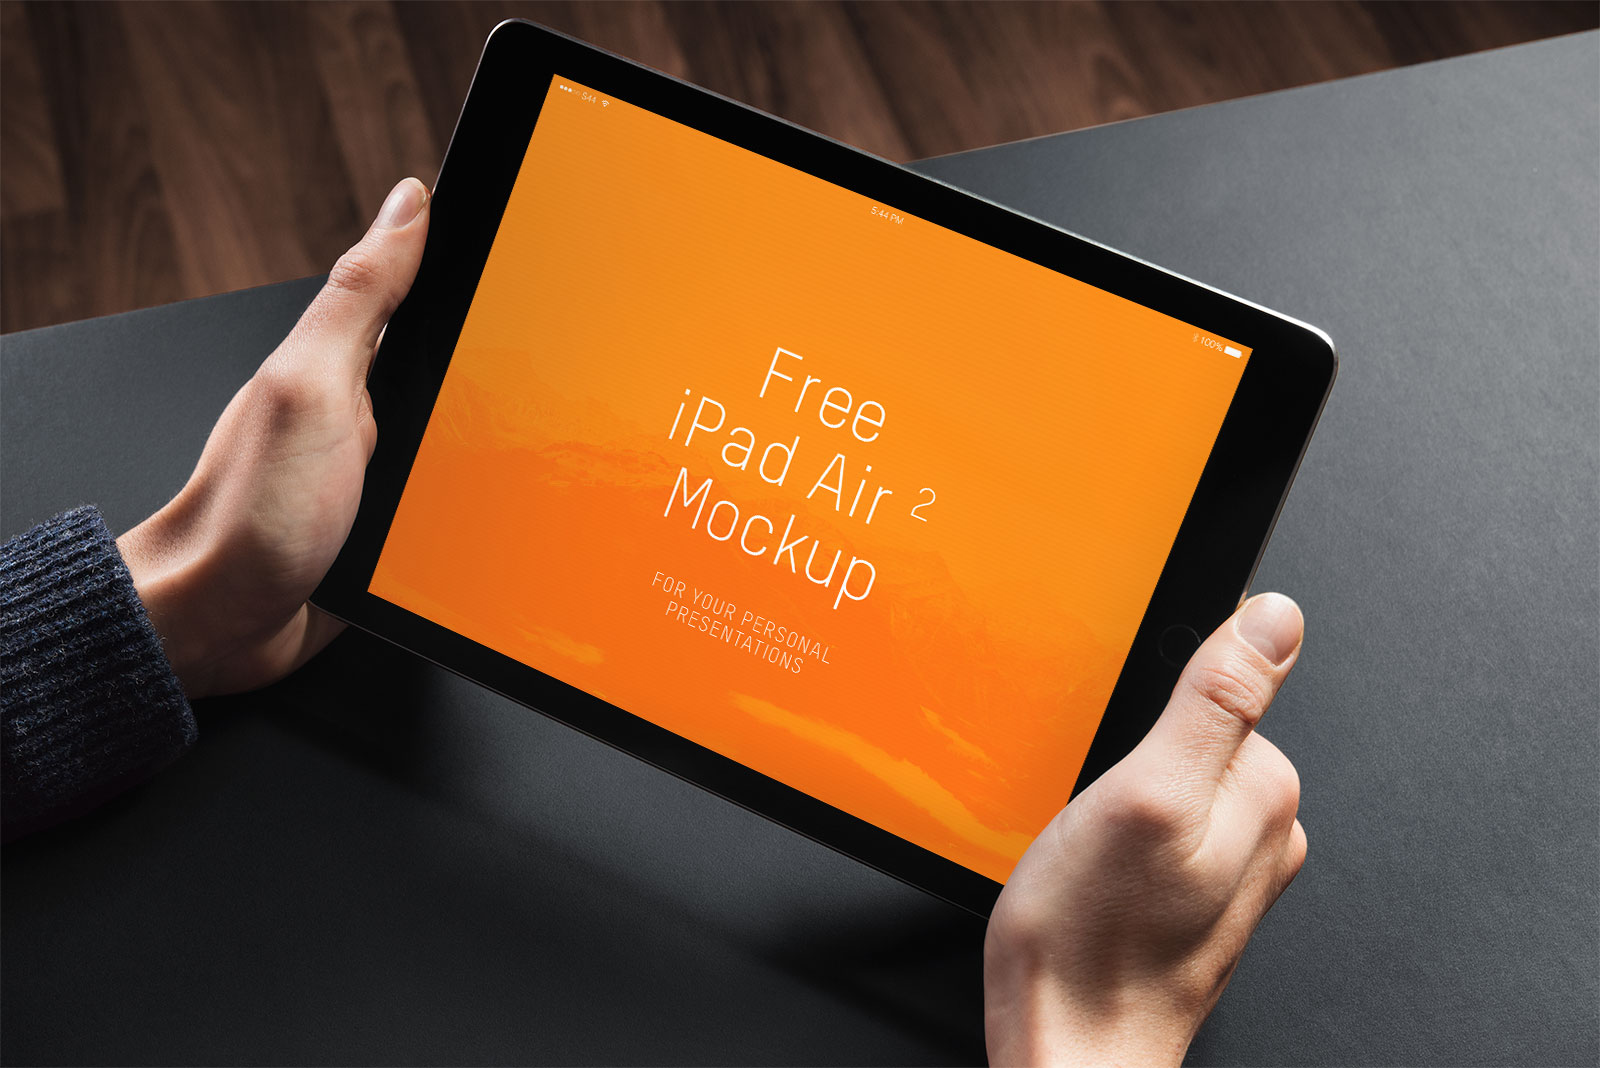 Free-iPad-2-photo-mockup-PSD